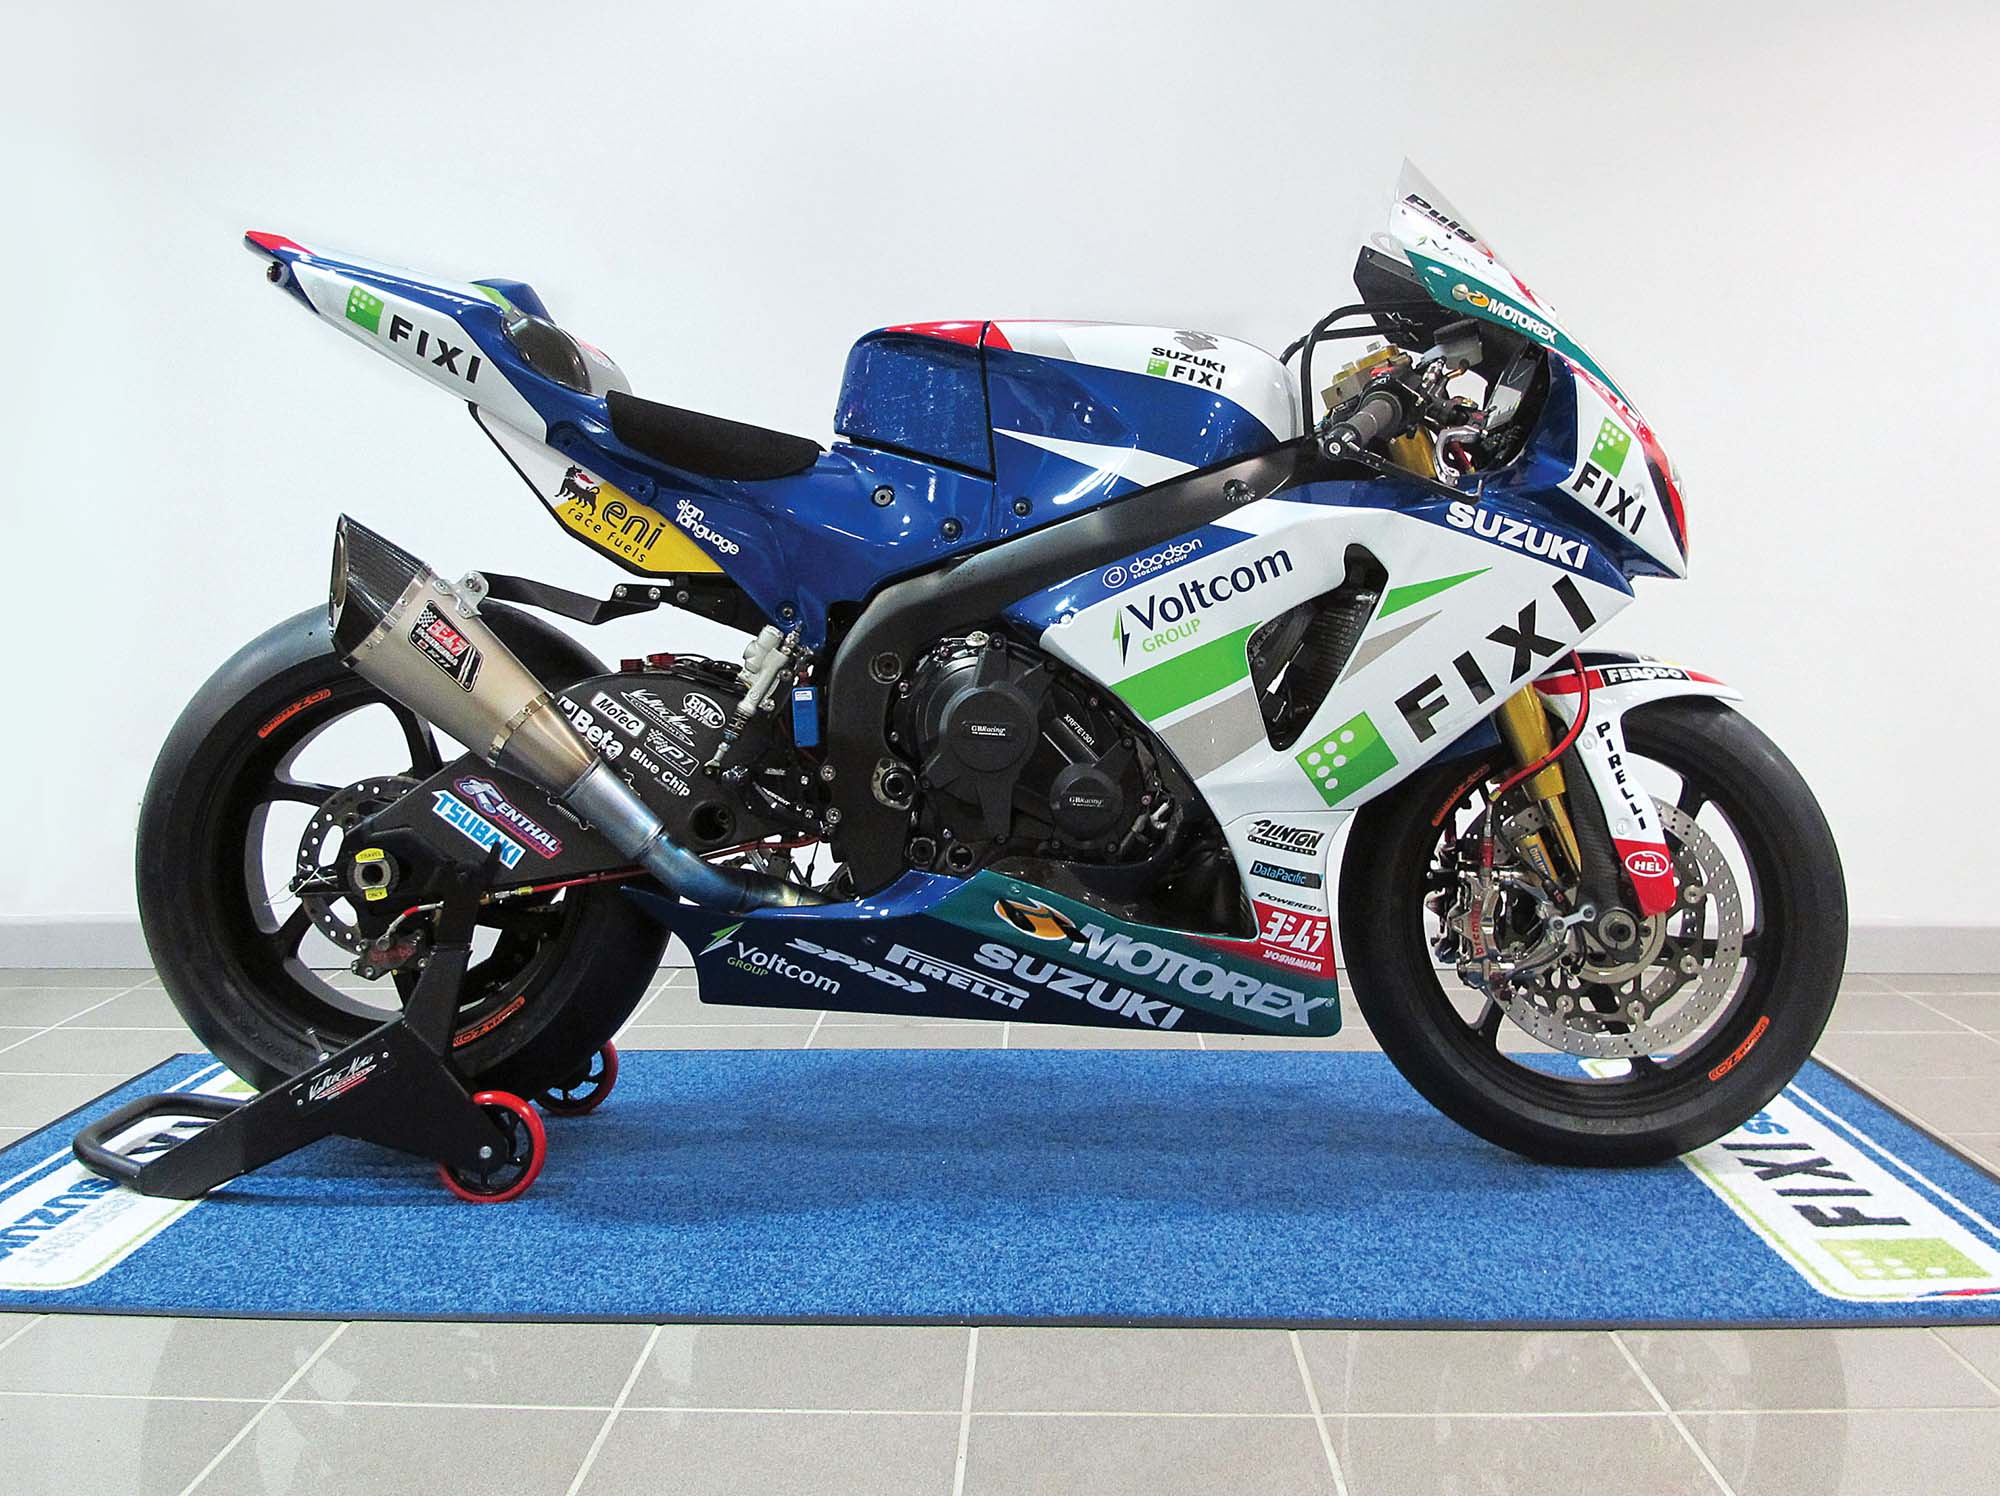 2013 fixi crescent suzuki gsx r1000 debuts with less engine building support from yoshimura. Black Bedroom Furniture Sets. Home Design Ideas